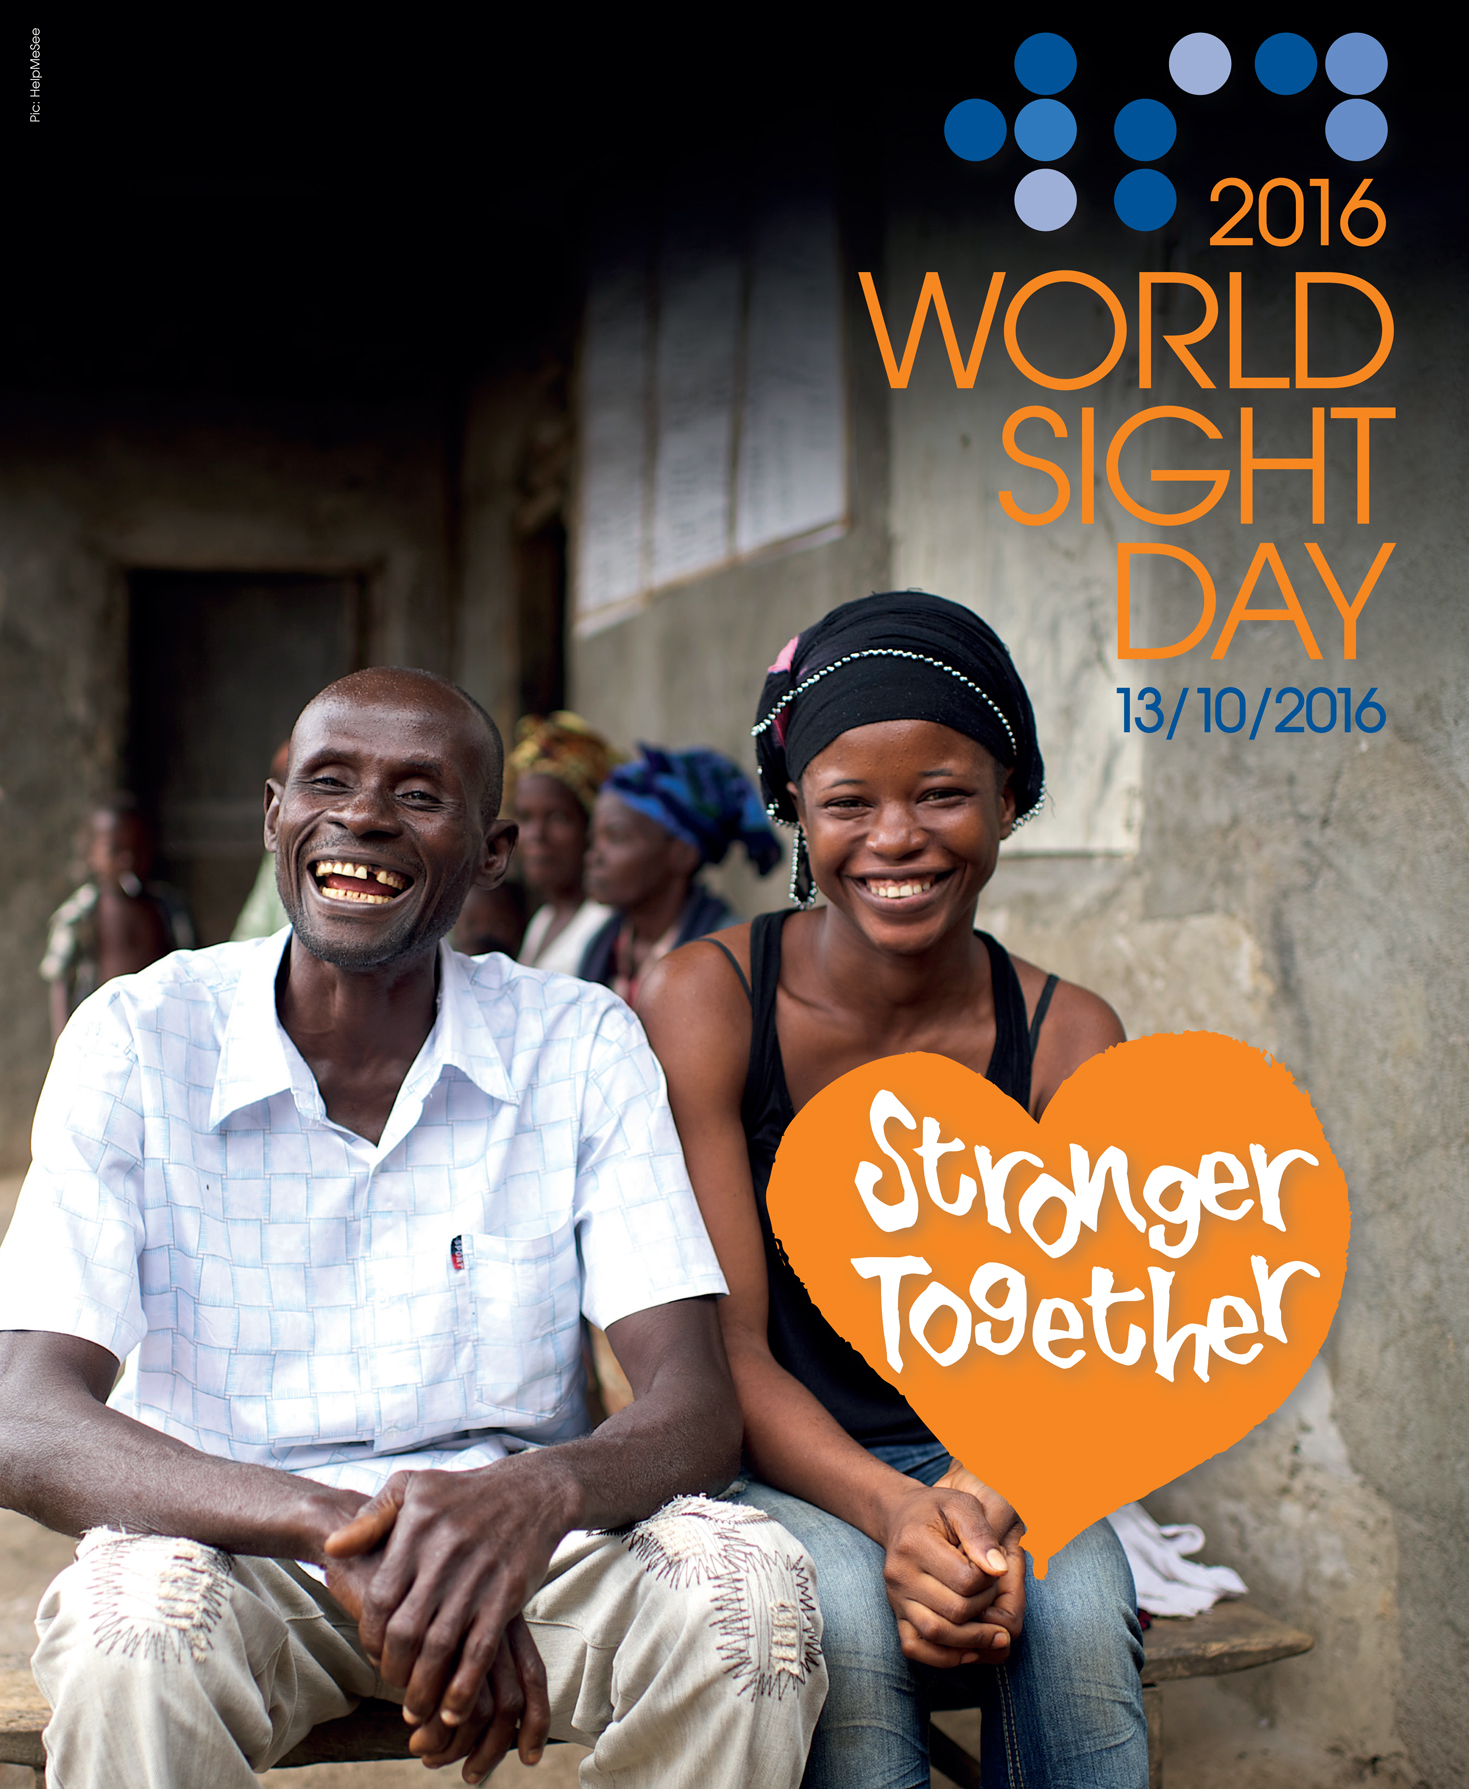 World Sight Day 2016 urges action against avoidable blindness and visual impairment